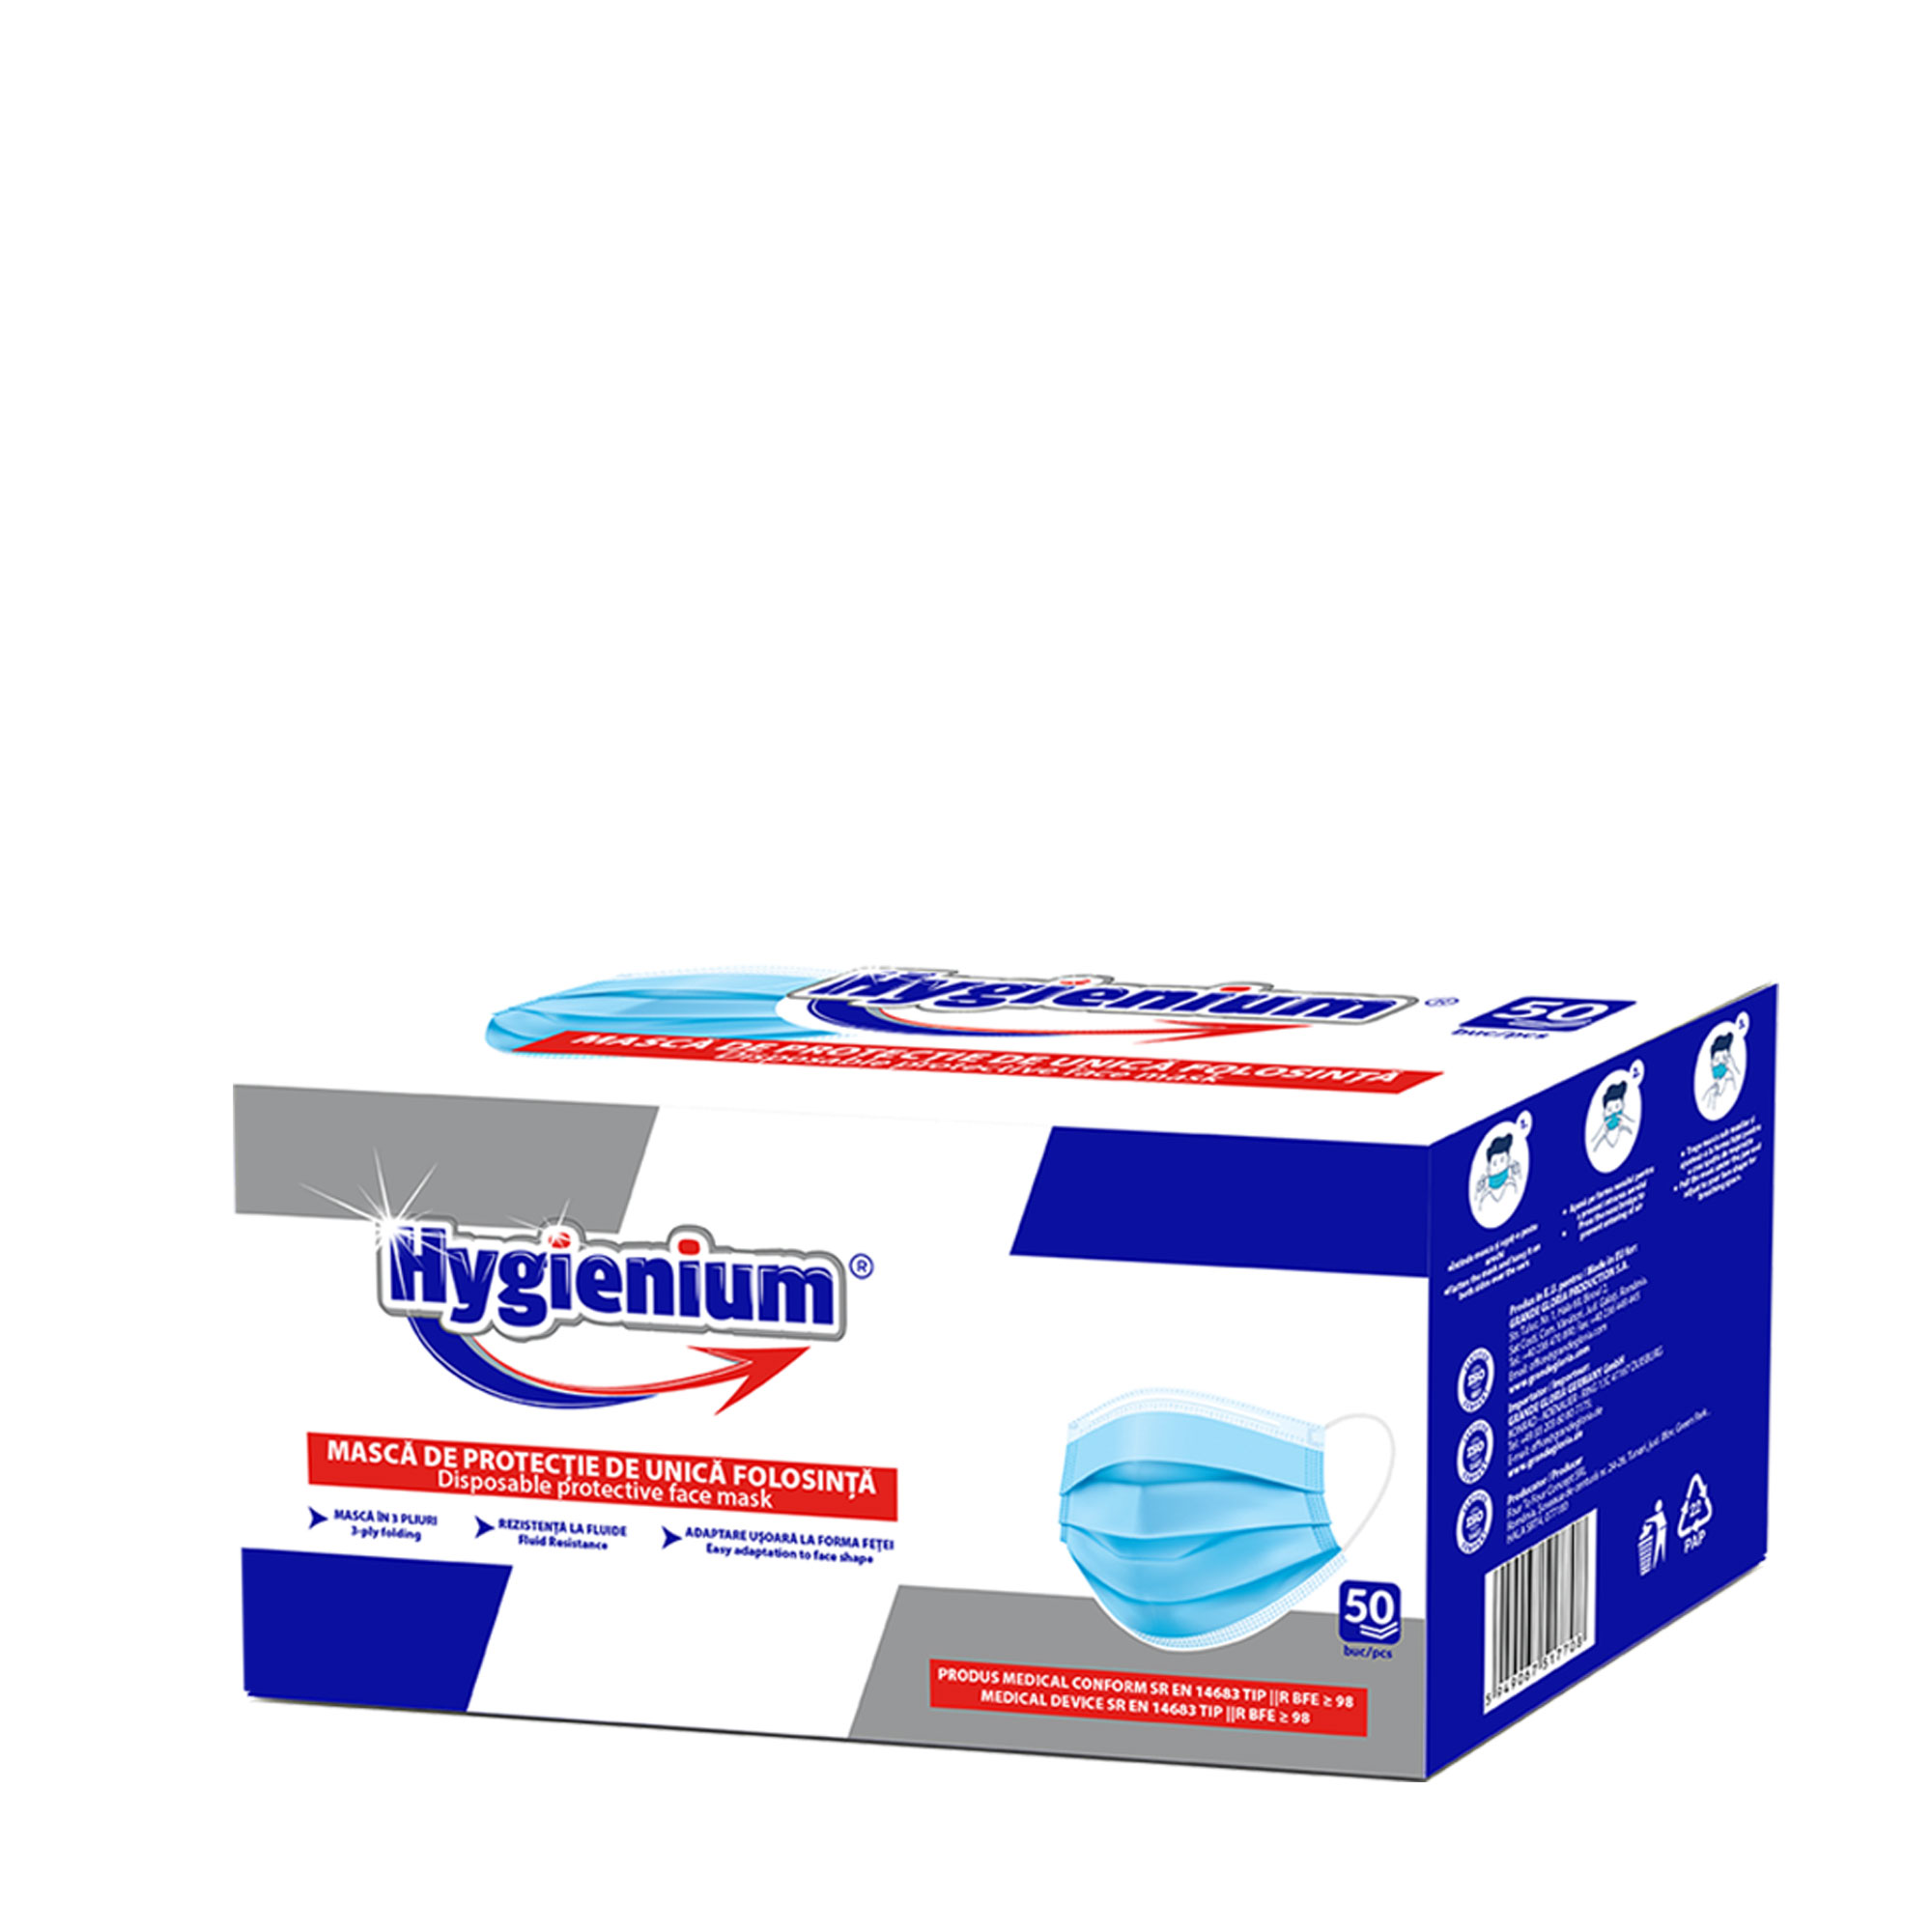 Hygienium Disposable Face Mask 50 pcs box